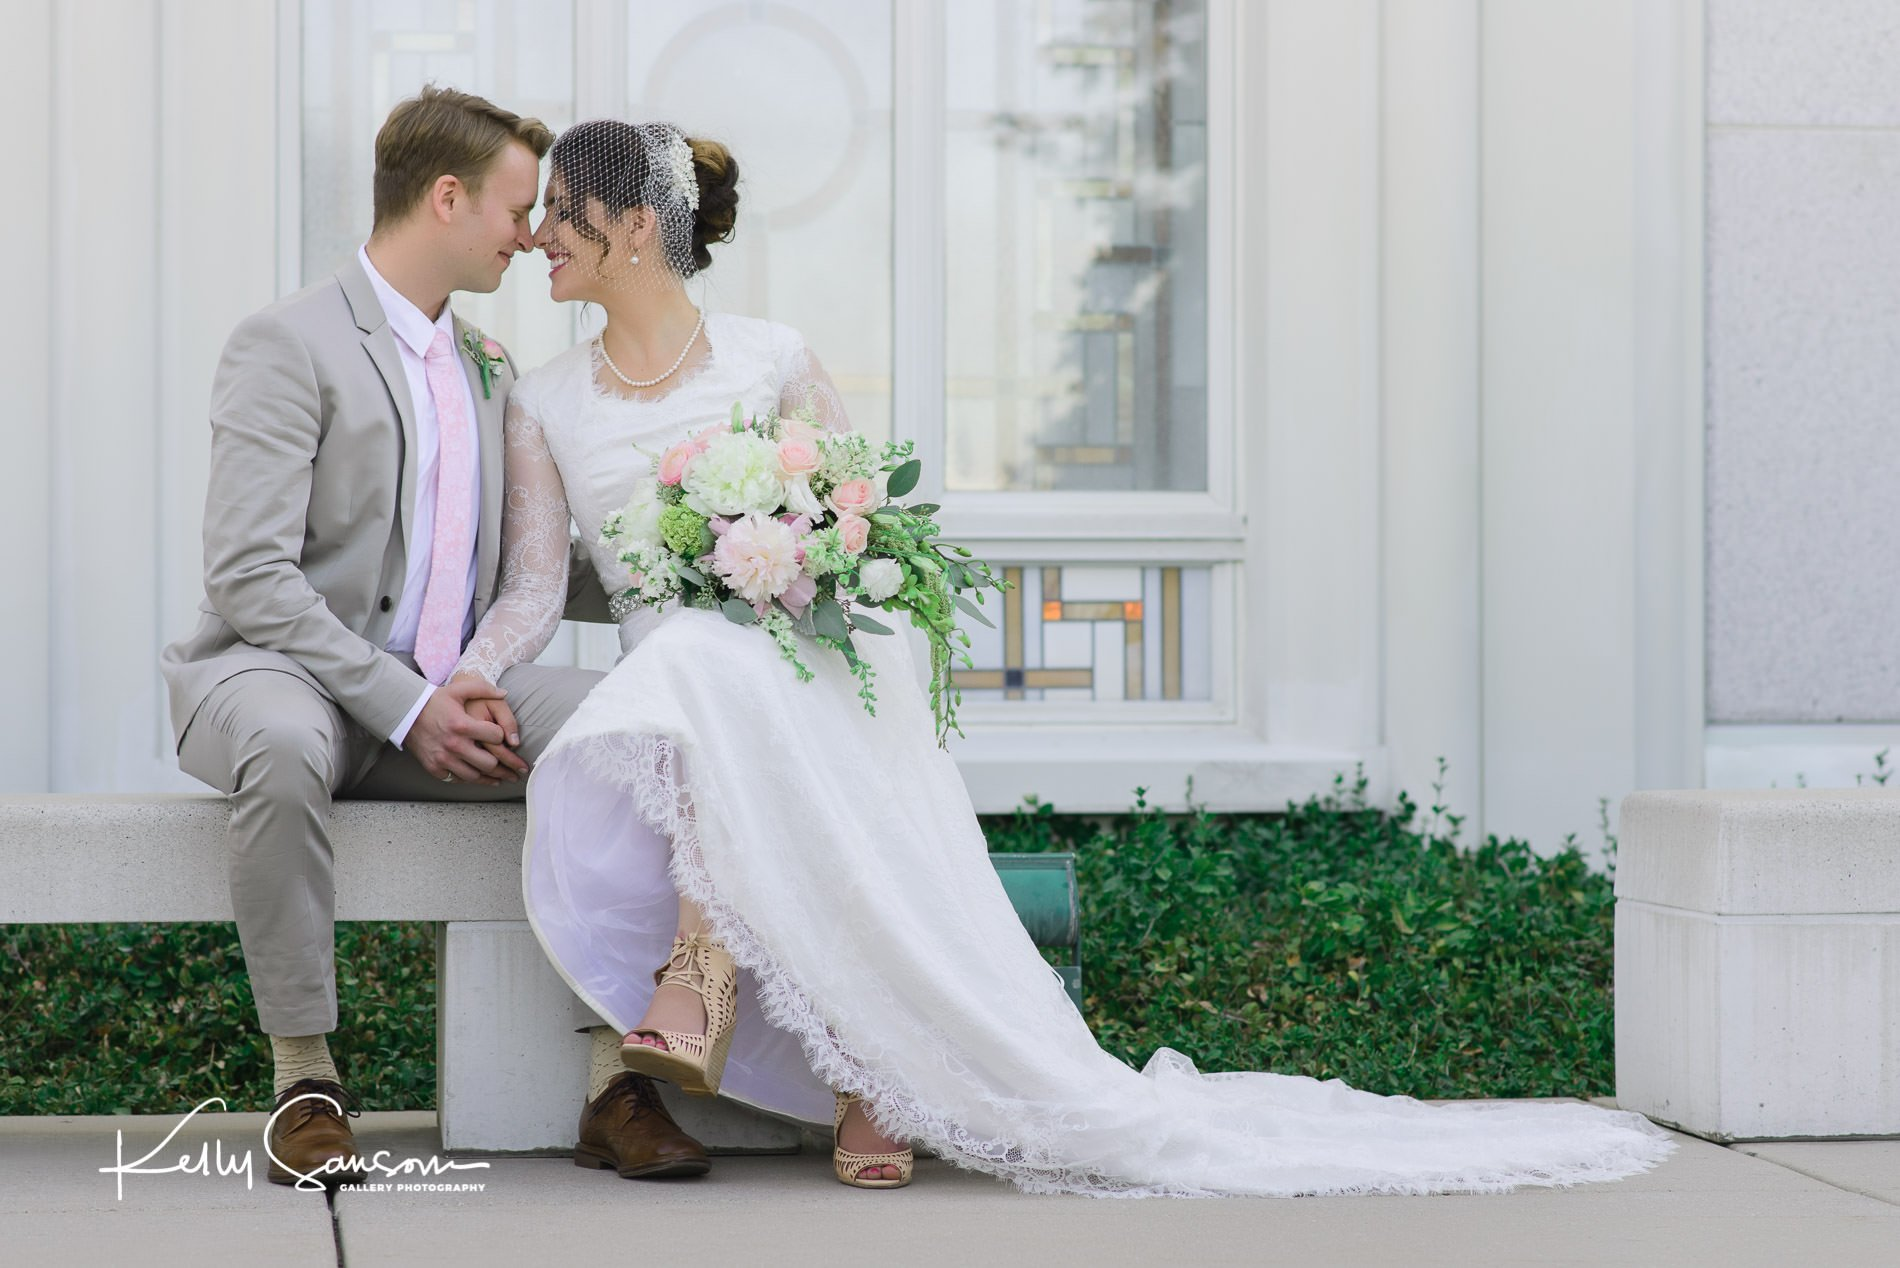 A bride and groom sit on a bench and touch foreheads for wedding photography at the Bountiful LDS temple.